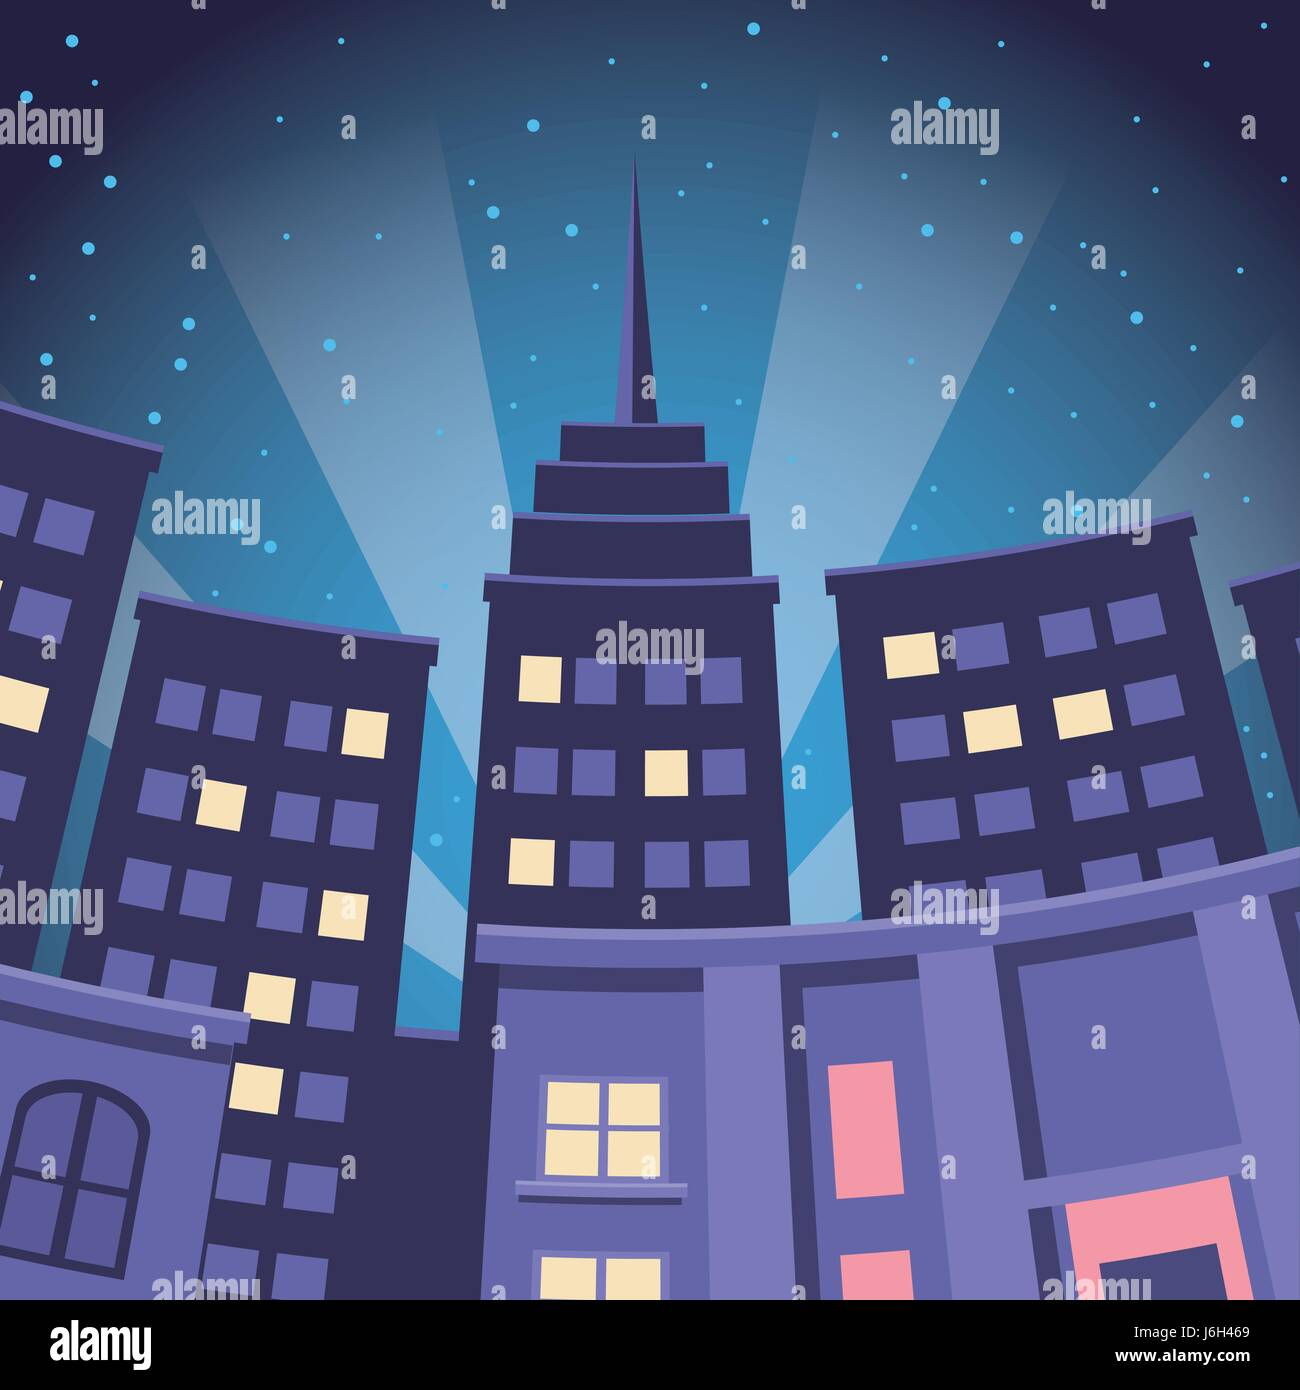 Outline athens skyline with blue buildings and copy space stock vector - Comic City Building Skyscraper Night View Stock Vector